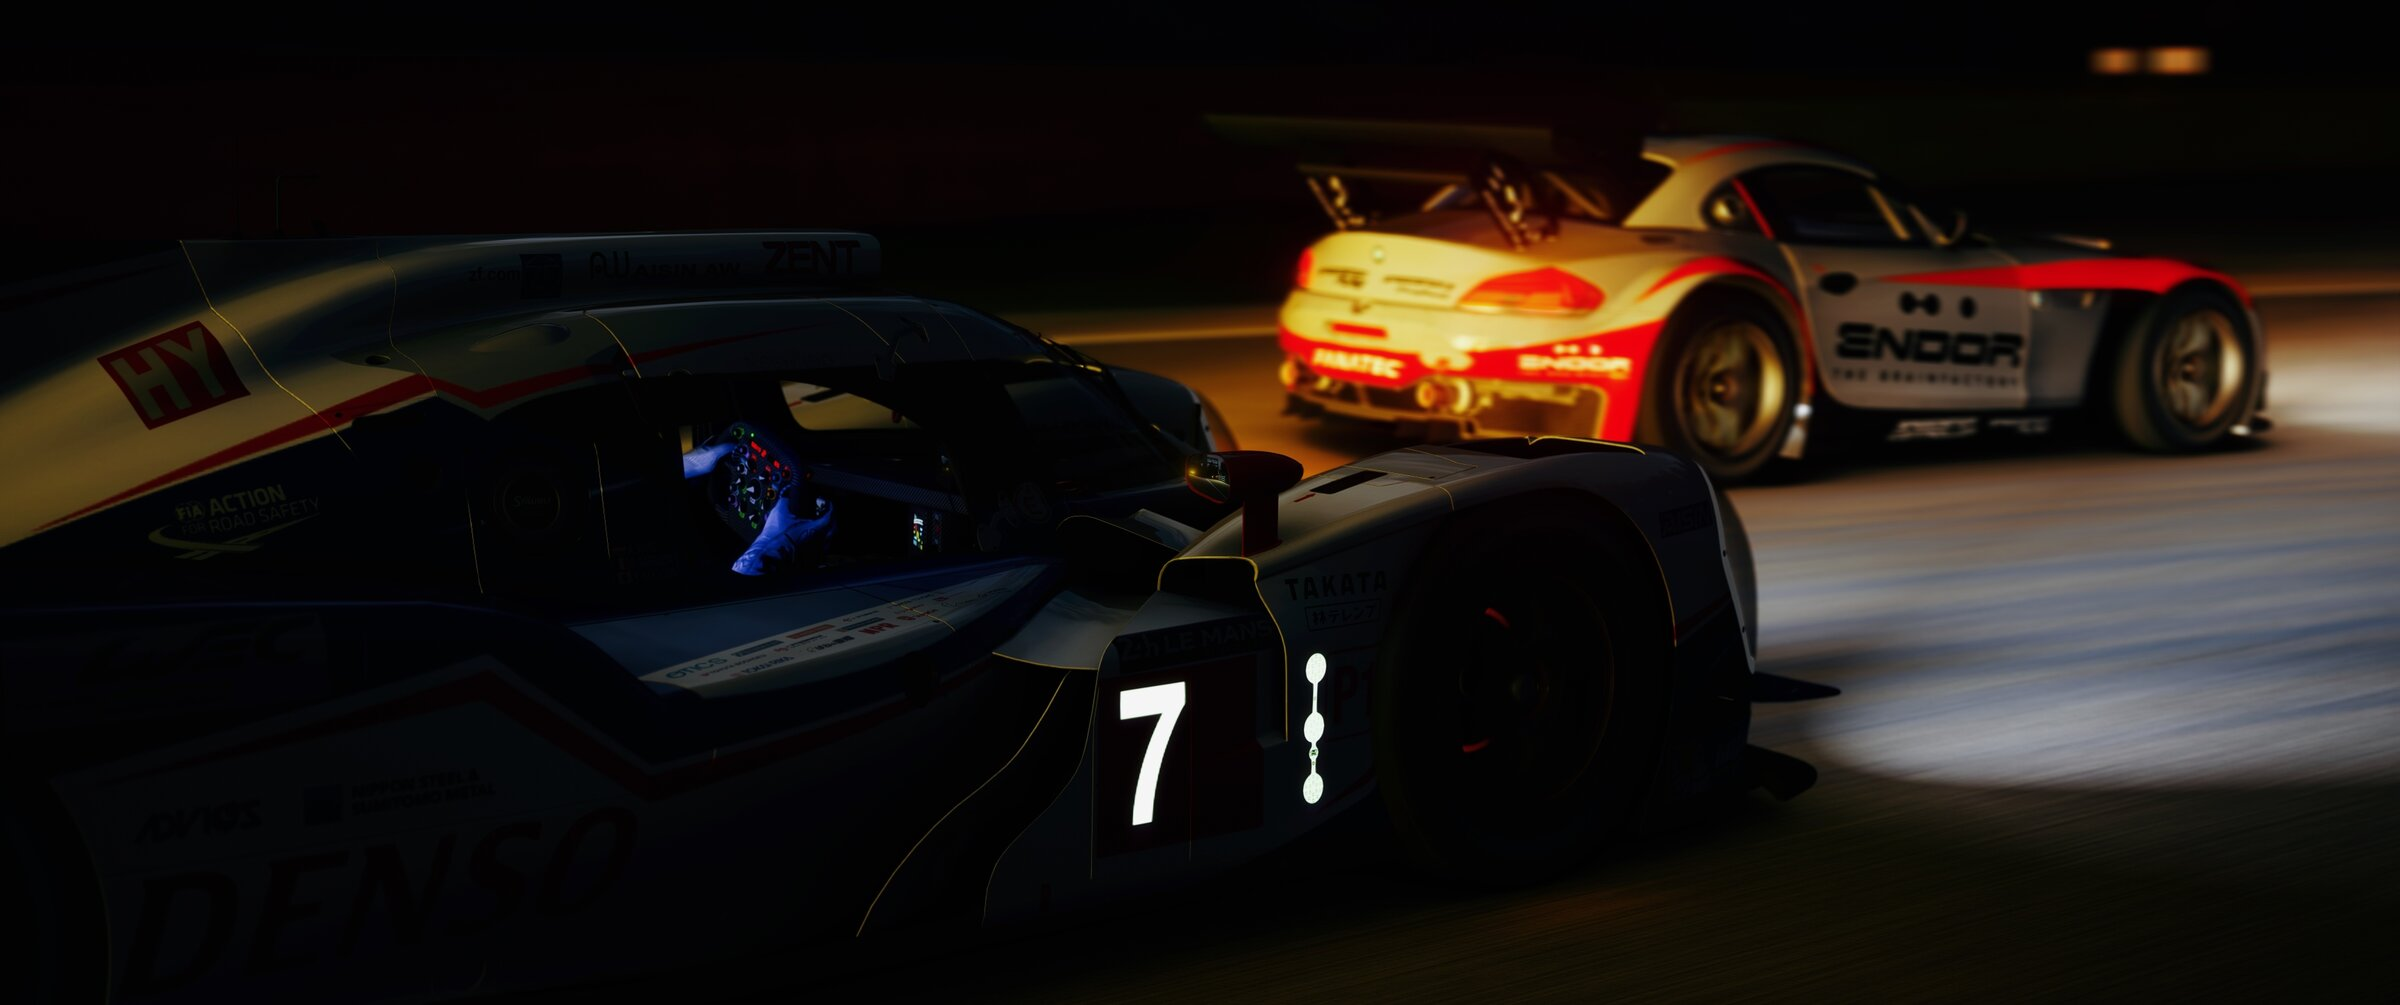 Screenshot_ks_toyota_ts040_spa_23-6-120-1-21-15.jpg